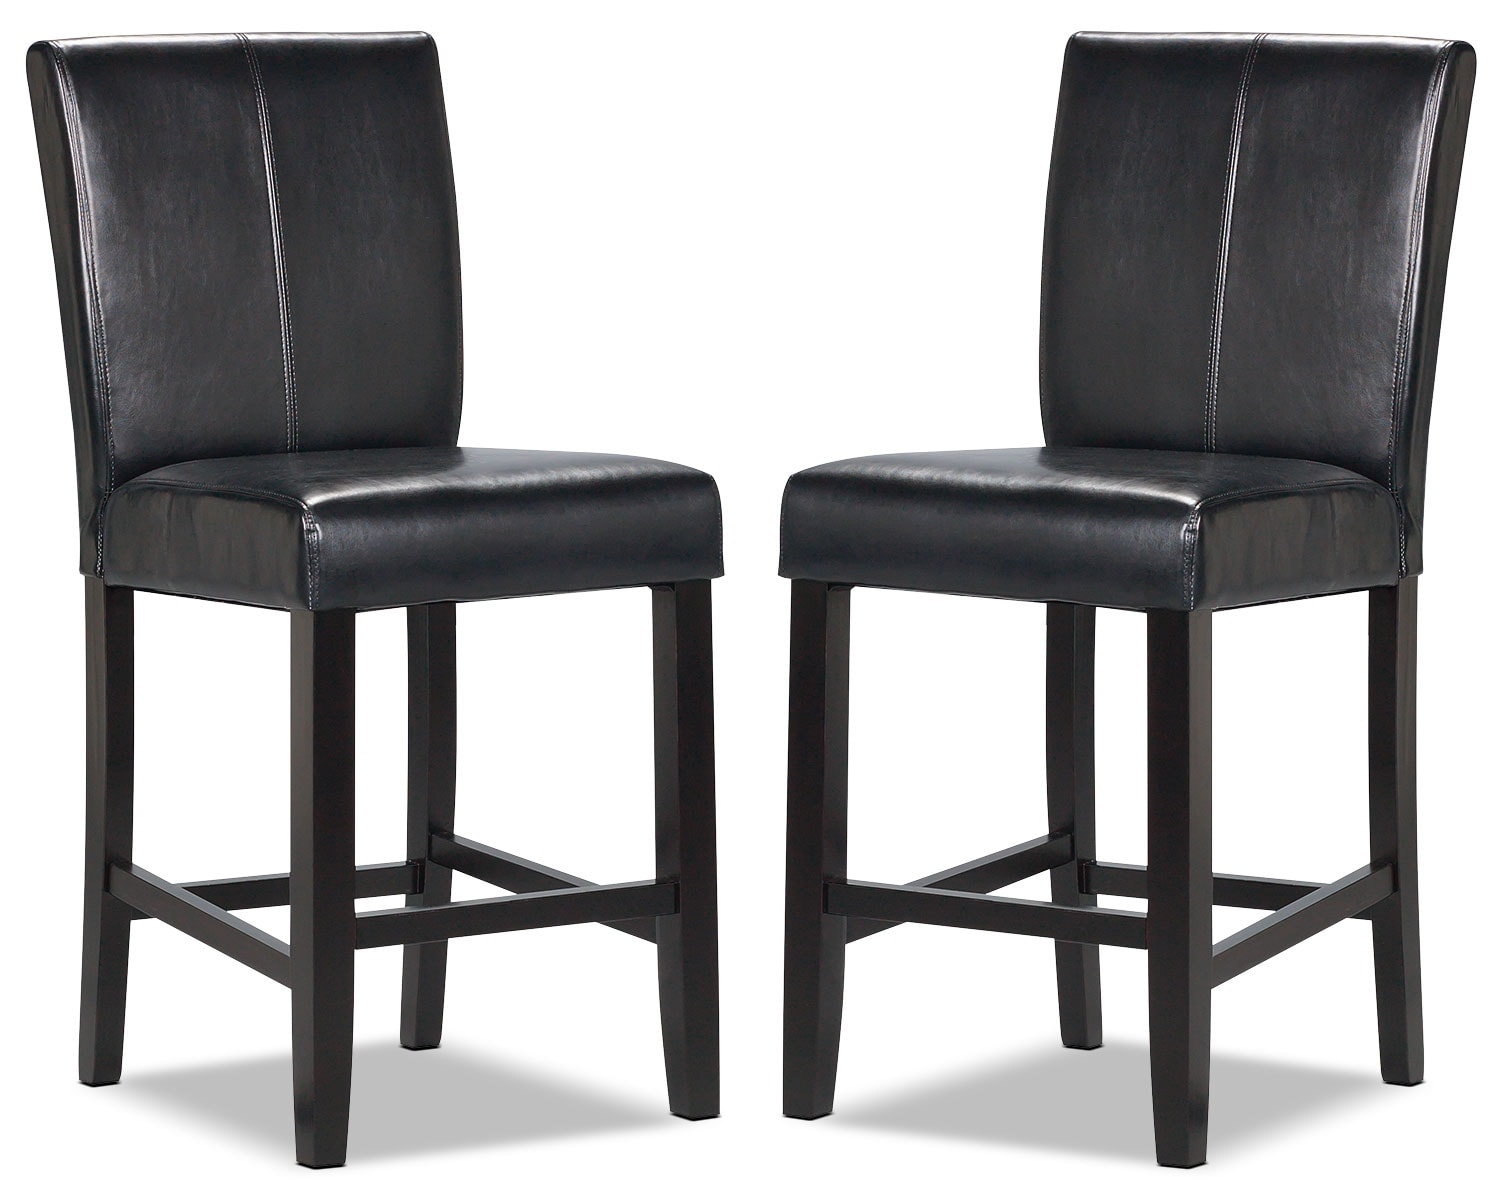 Kendall Black Accent Counter Chairs, Set of 2